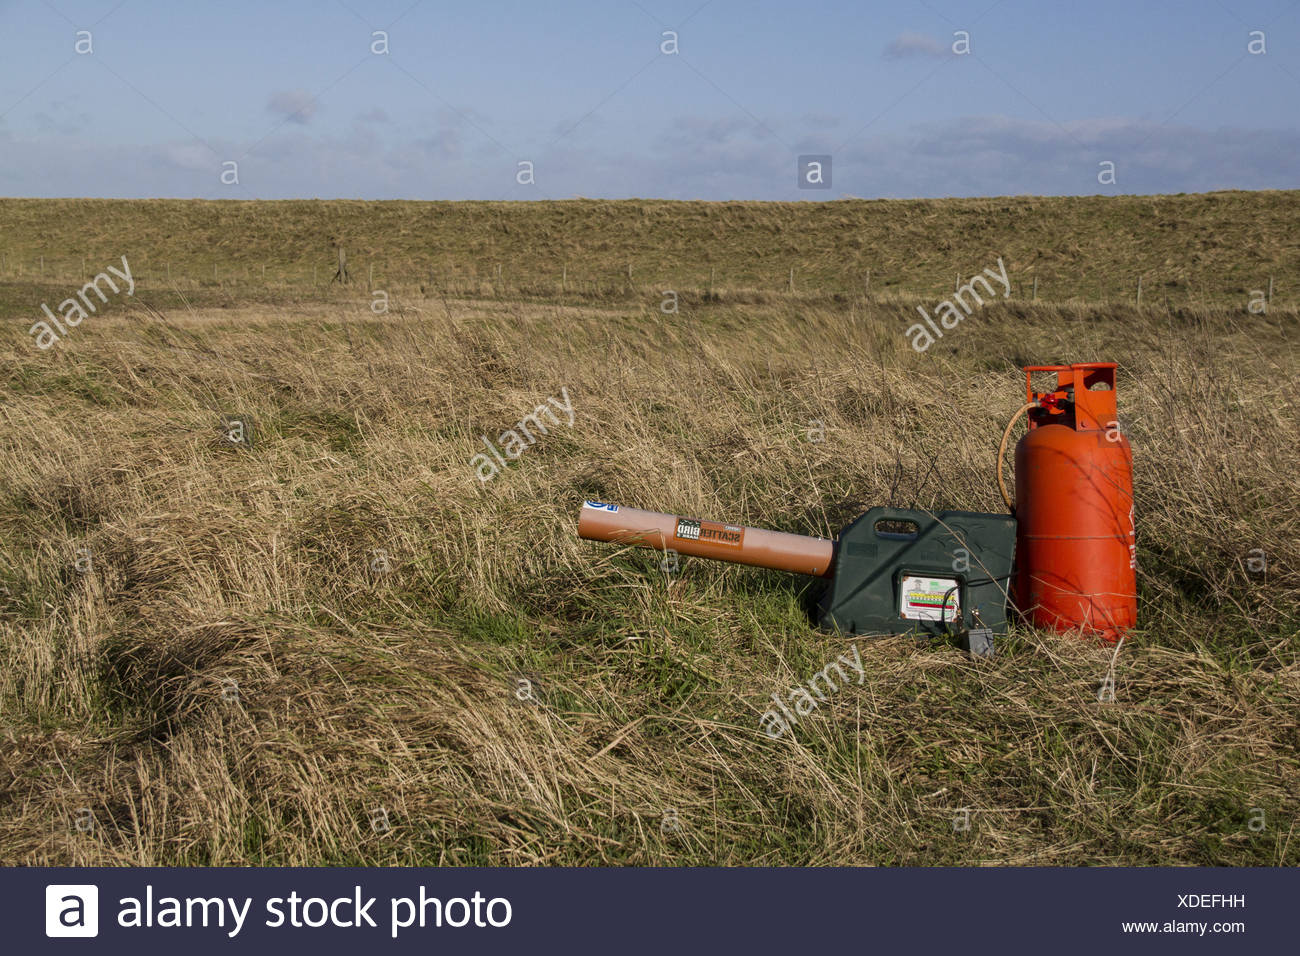 Gas-gun, gas powered bird scarer at edge of arable field, Norfolk, England, winter - Stock Image